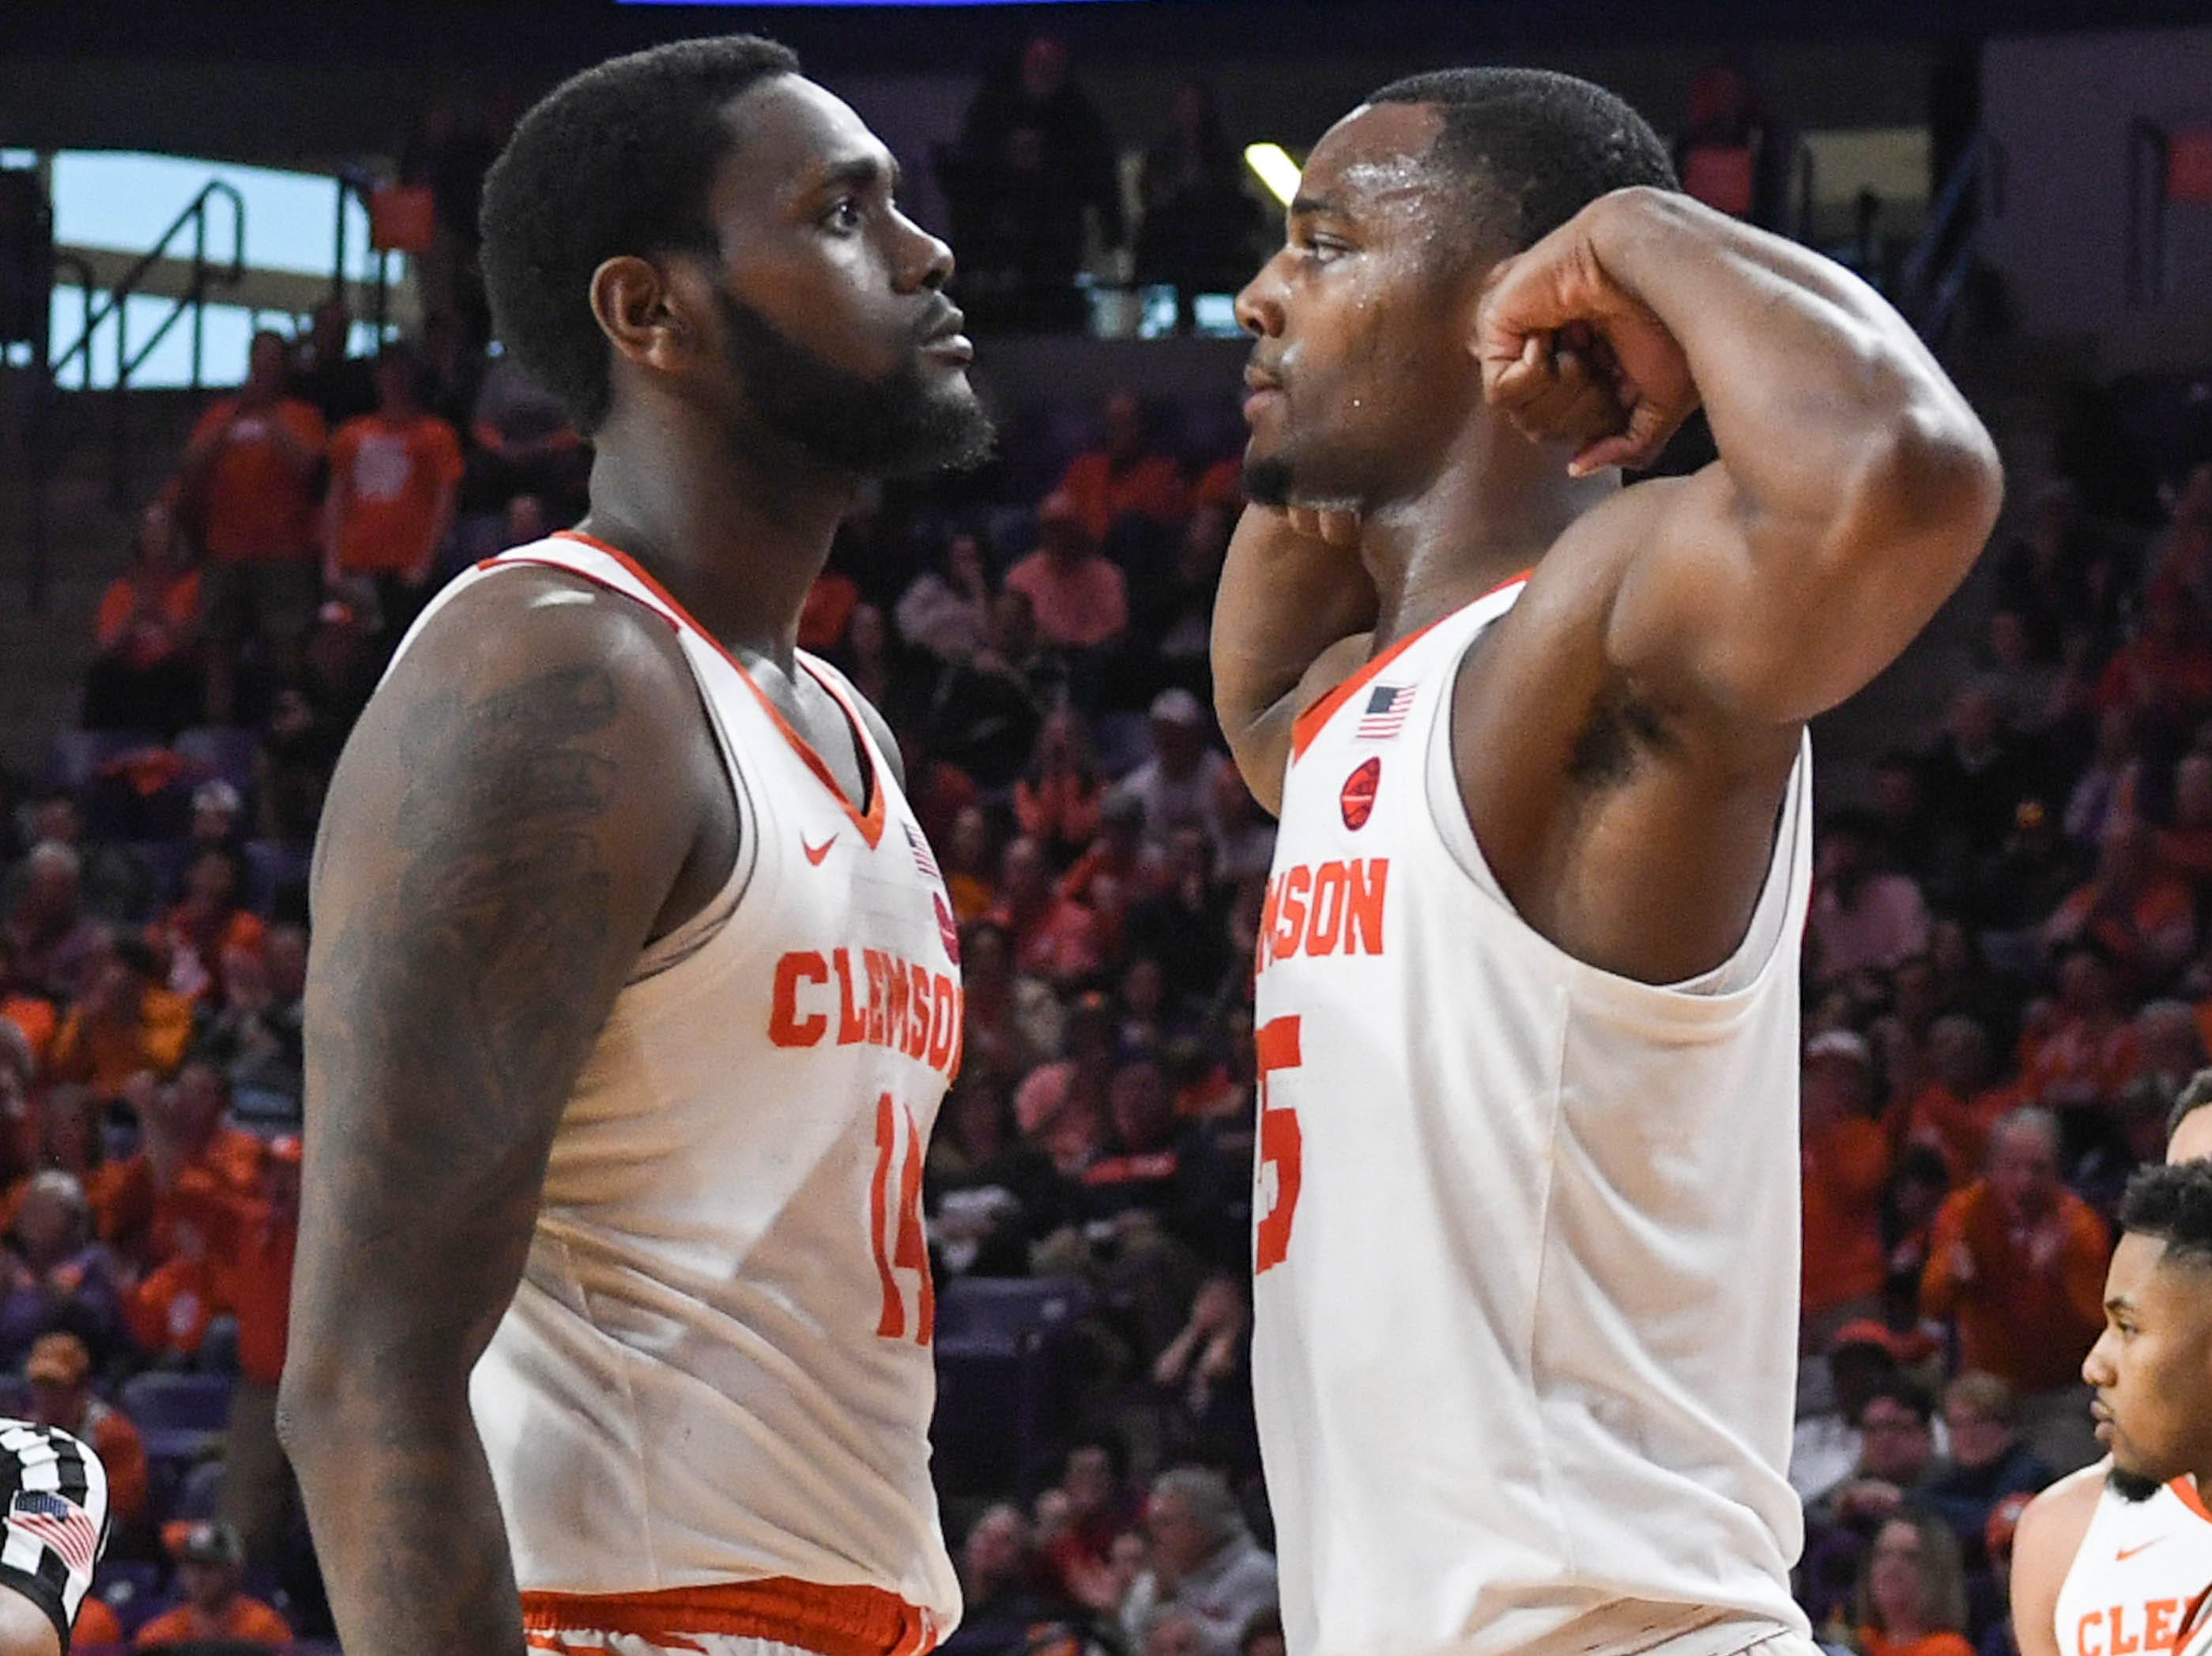 Clemson forward Elijah Thomas (14) is greeted by Clemson forward Aamir Simms (25) after making a basket against Syracuse during the second half in Littlejohn Coliseum in Clemson Saturday, March 9, 2019.